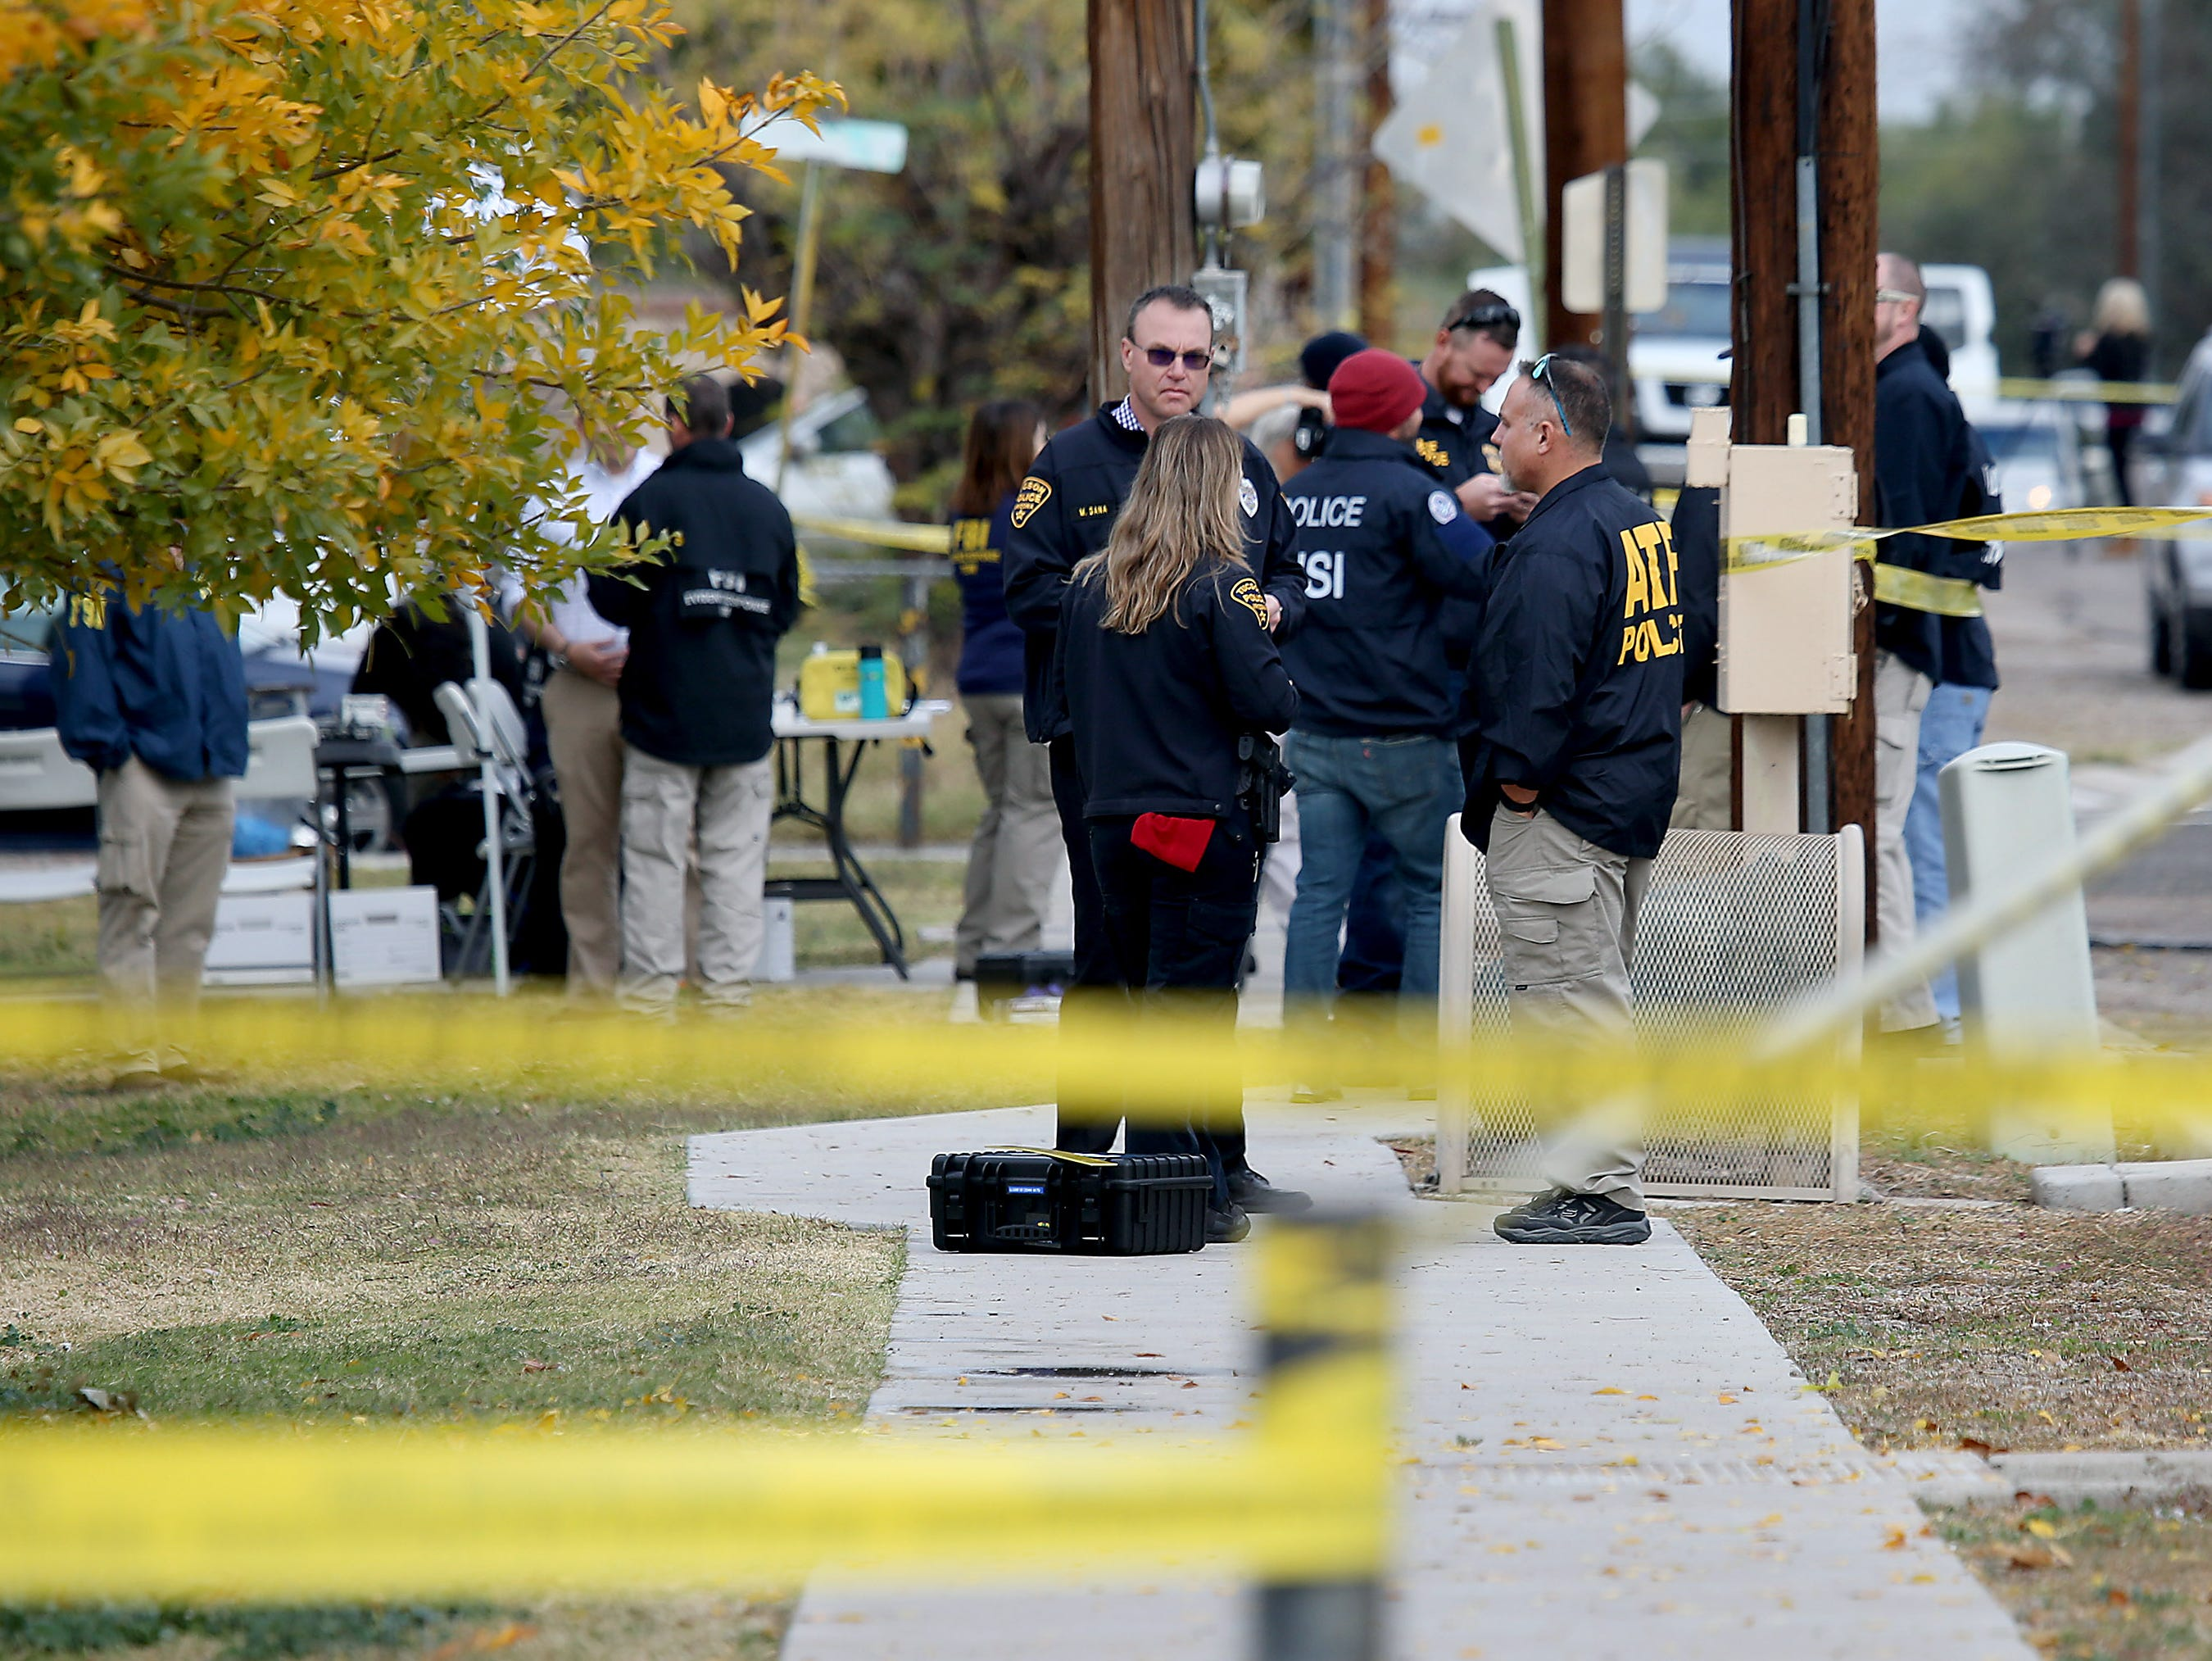 Law-enforcement personnel continue their investigation Nov. 30, 2018, at the scene where Deputy U.S. Marshal Chase White was serving a felony arrest warrant when he was shot and killed Nov. 29 outside a north Tucson house.